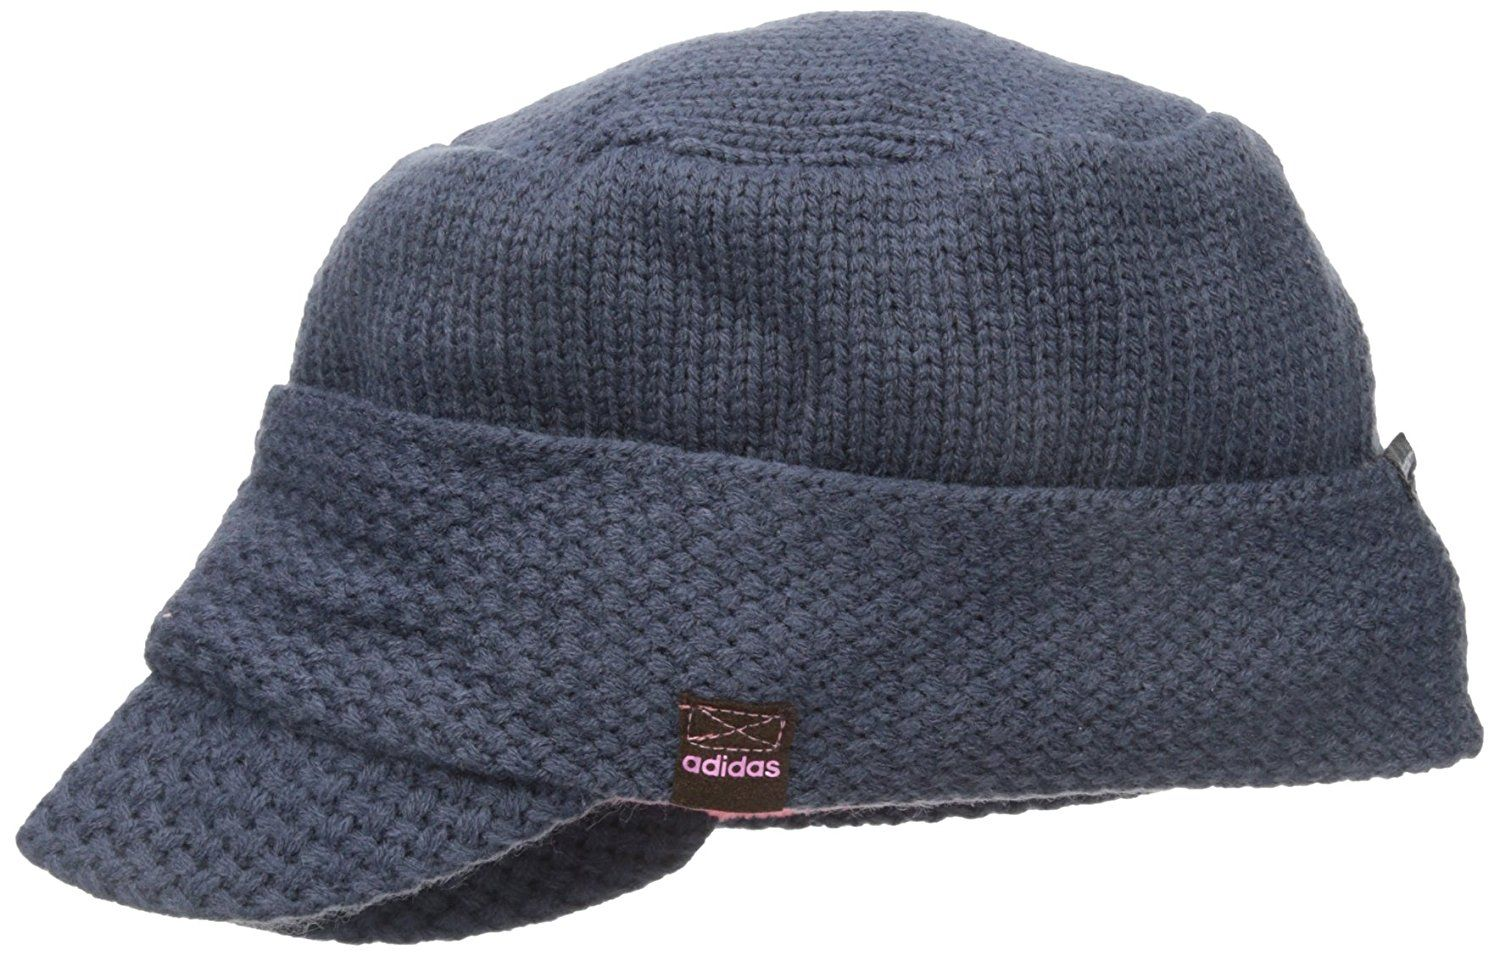 95e207488e7 Climawarm technology on this womens lynx military golf beanie hat by Adidas  helps to provide warmth and comfort during cold weather conditions!